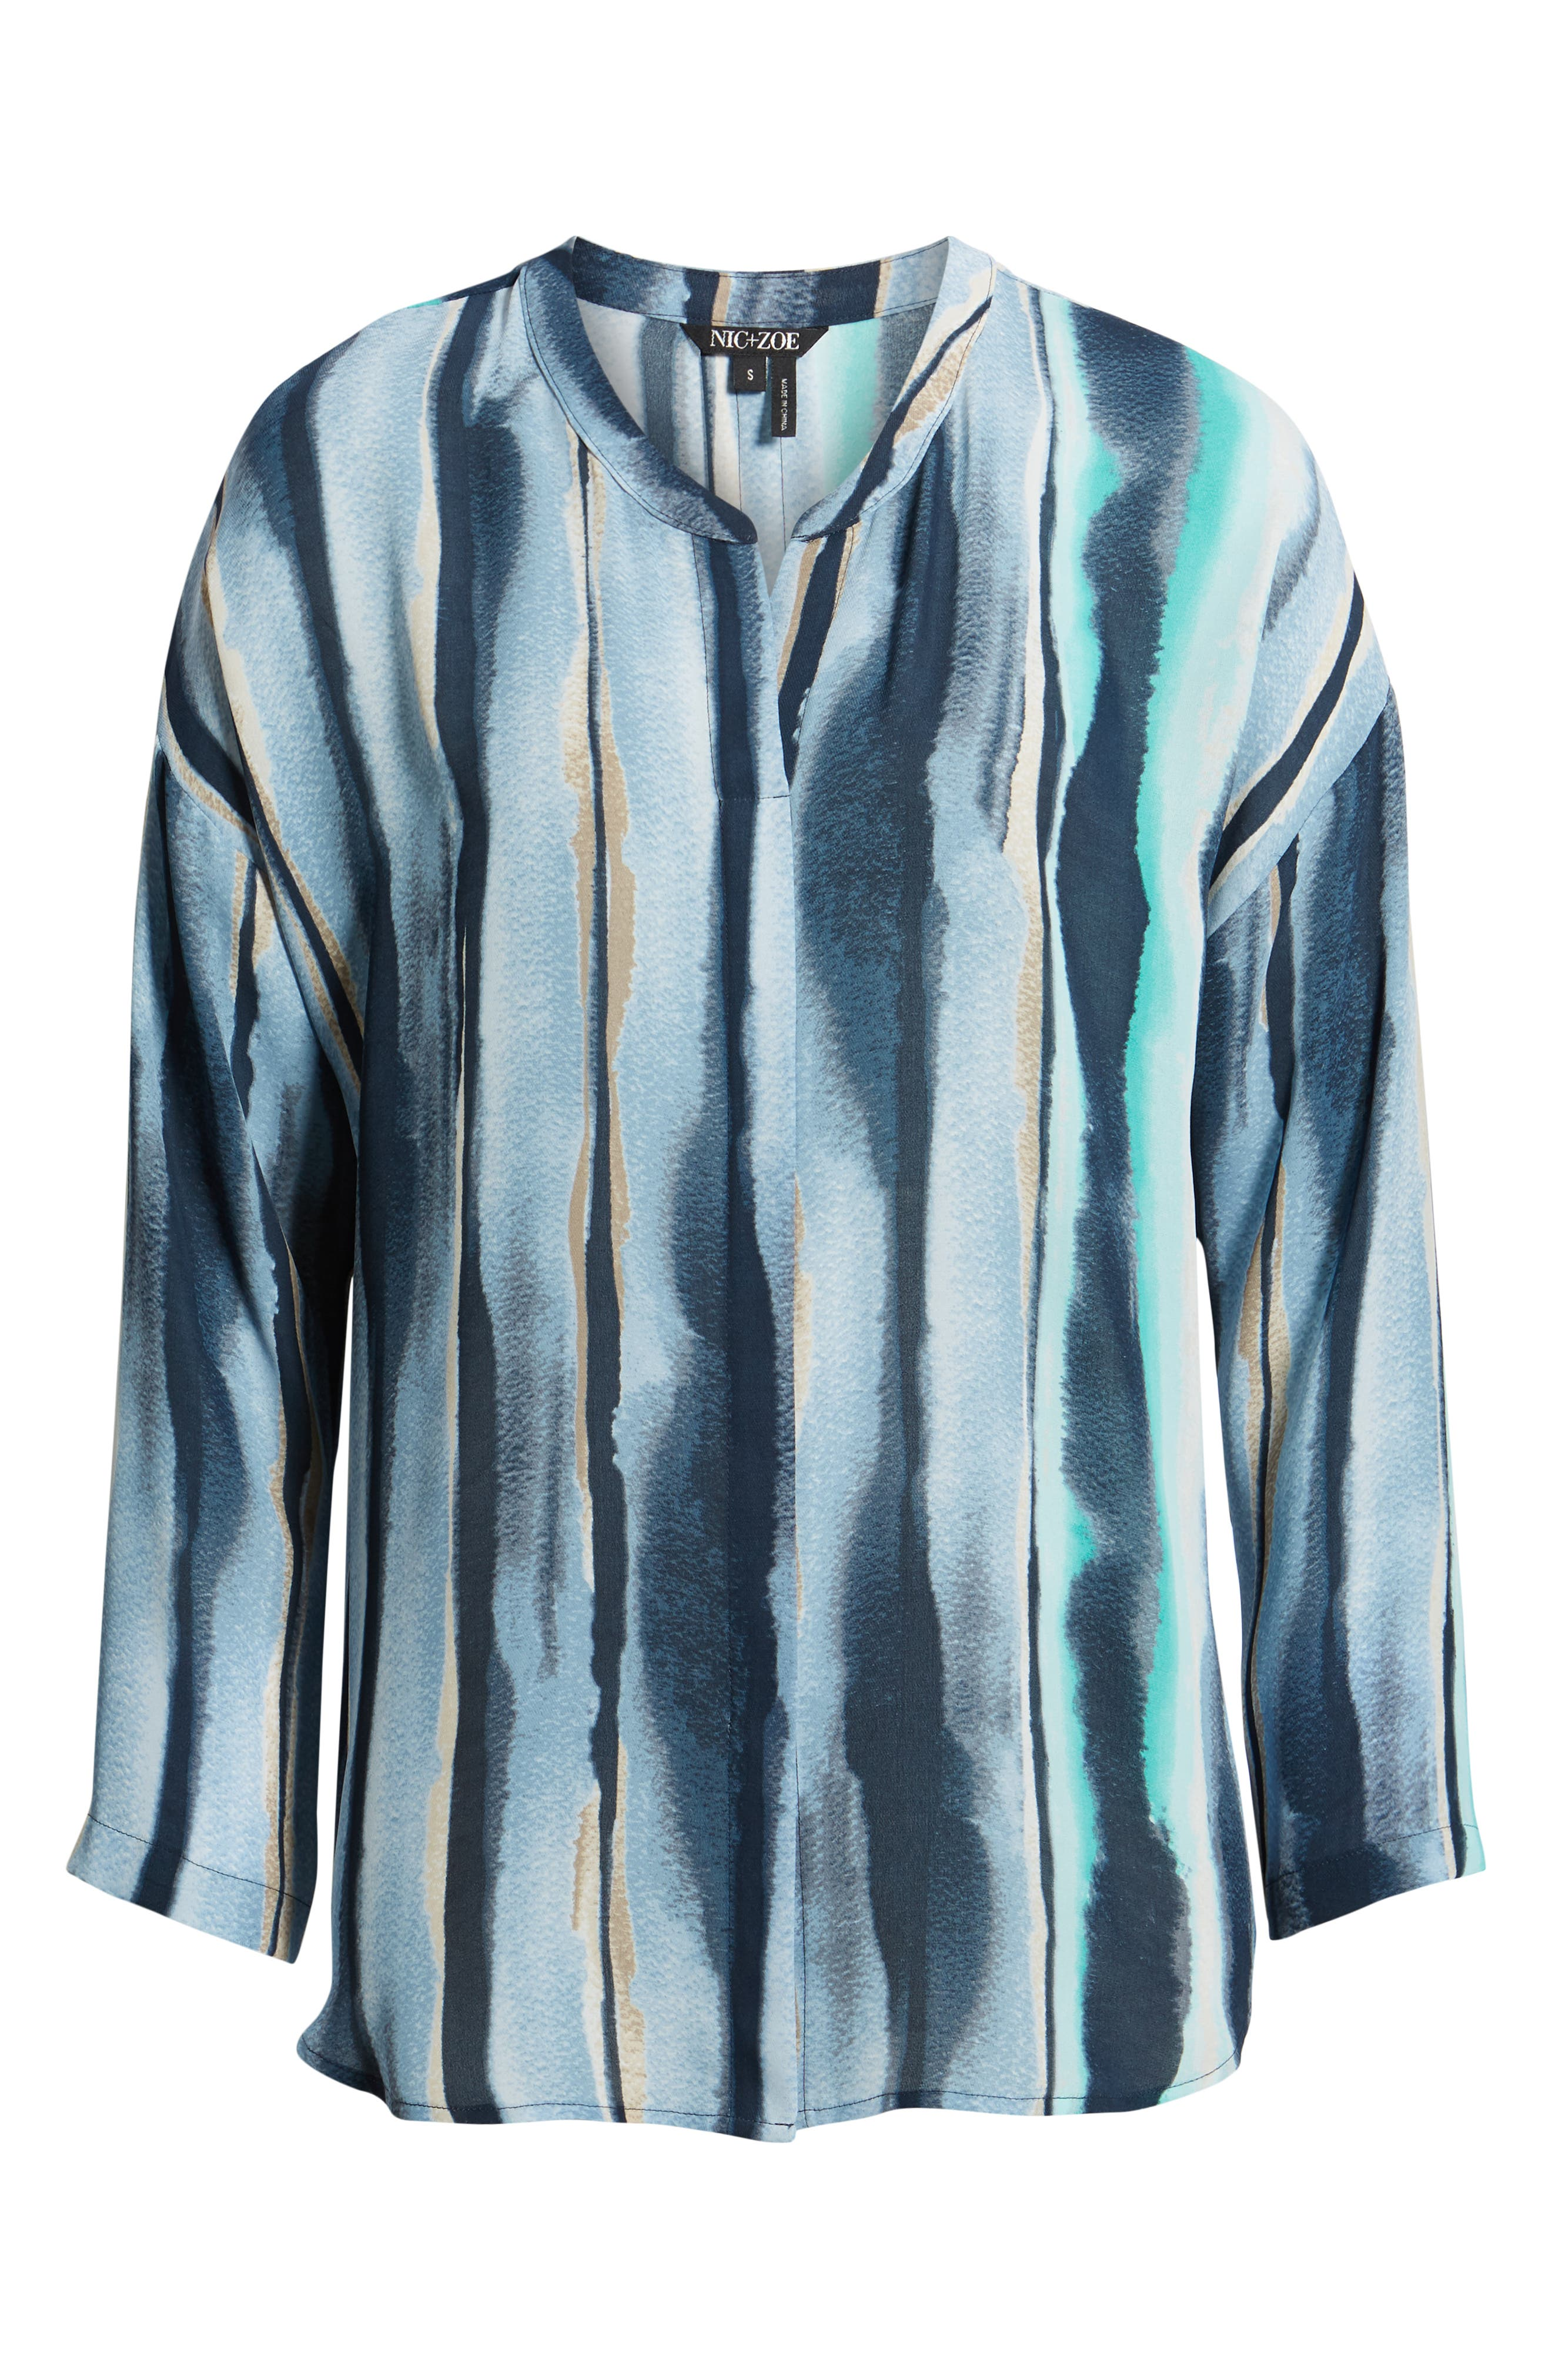 NIC+ZOE, Sea Stripe Long Sleeve Top, Alternate thumbnail 6, color, MULTI